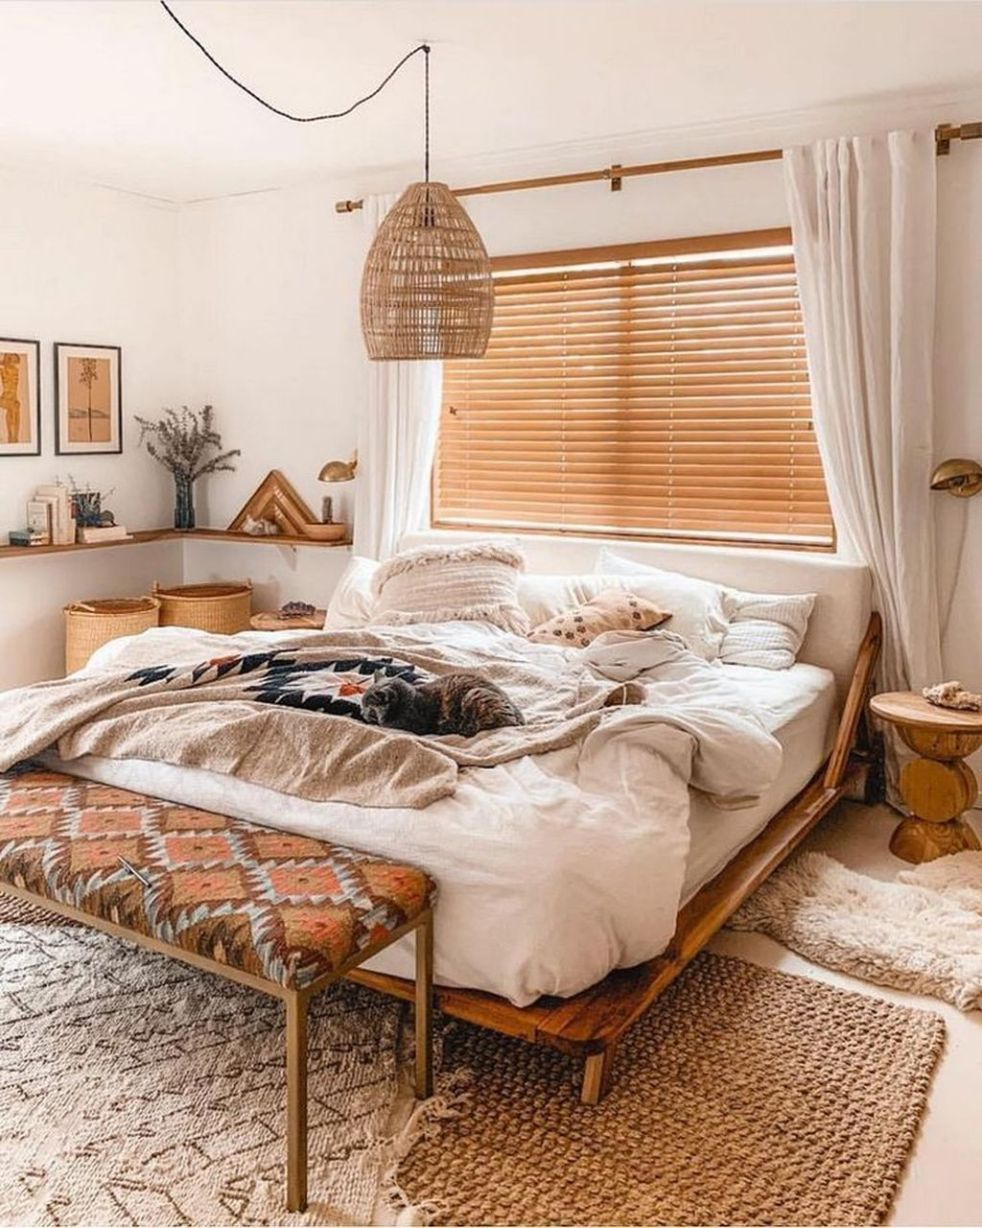 32 gorgeous modern bohemian bedroom decor ideas | bedroom interior, modern bohemian bedroom